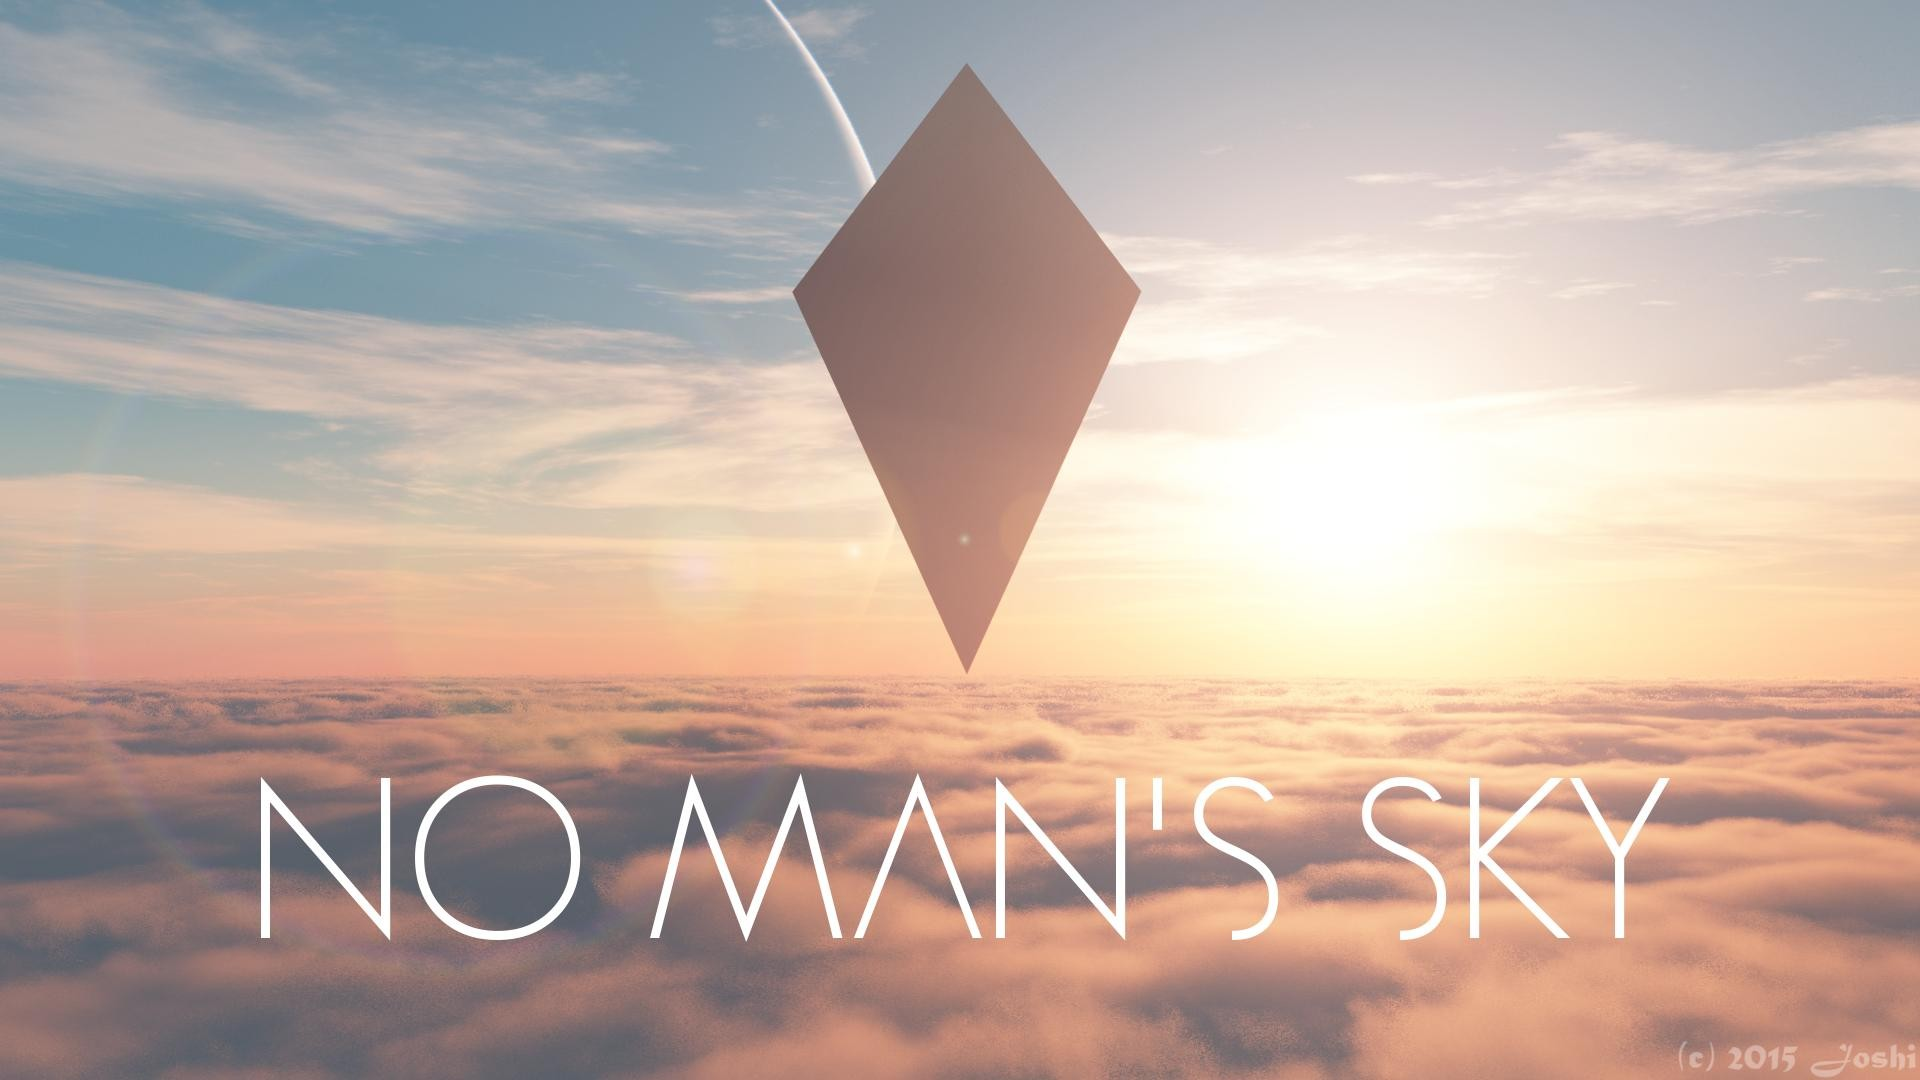 Hd Cool Boy Wallpaper No Man S Sky Background 183 ① Download Free Cool Backgrounds